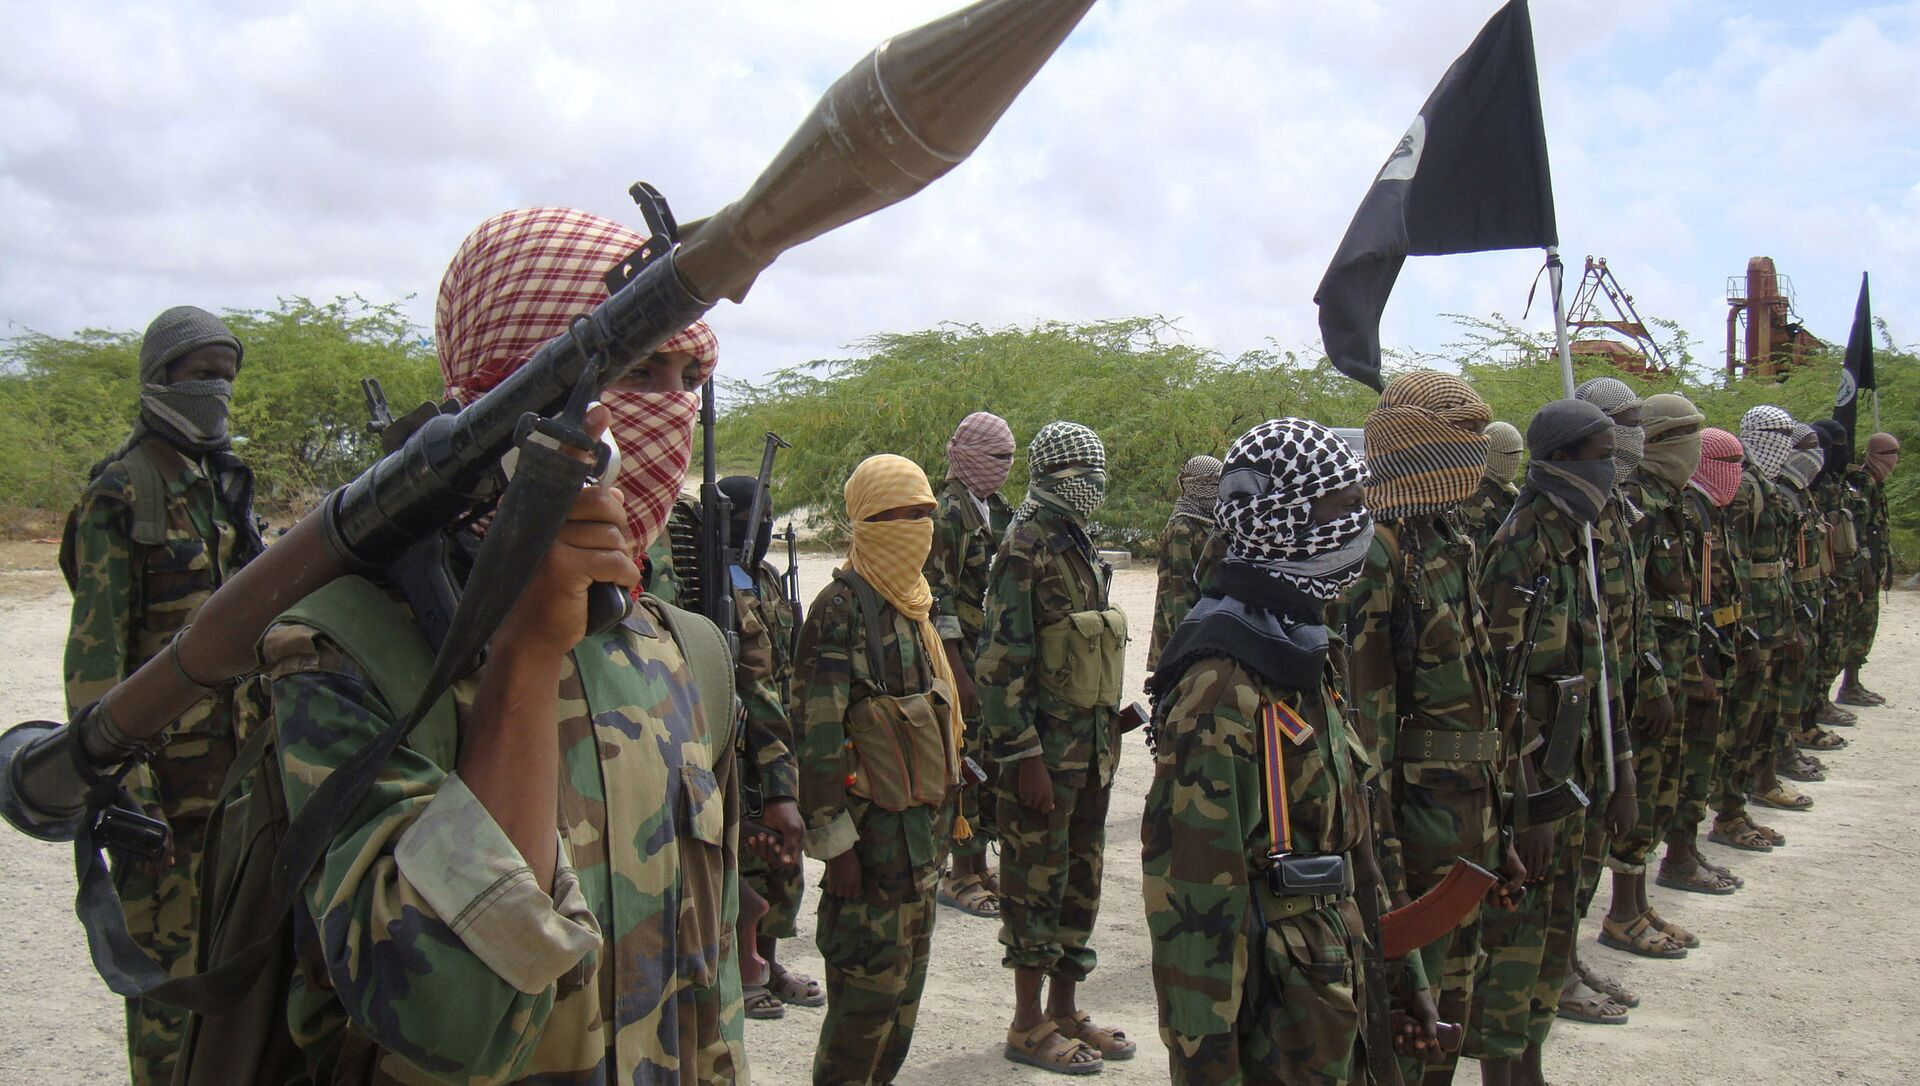 Al-Shabaab fighters display weapons as they conduct military exercises in northern Mogadishu, Somalia - Sputnik International, 1920, 23.07.2021